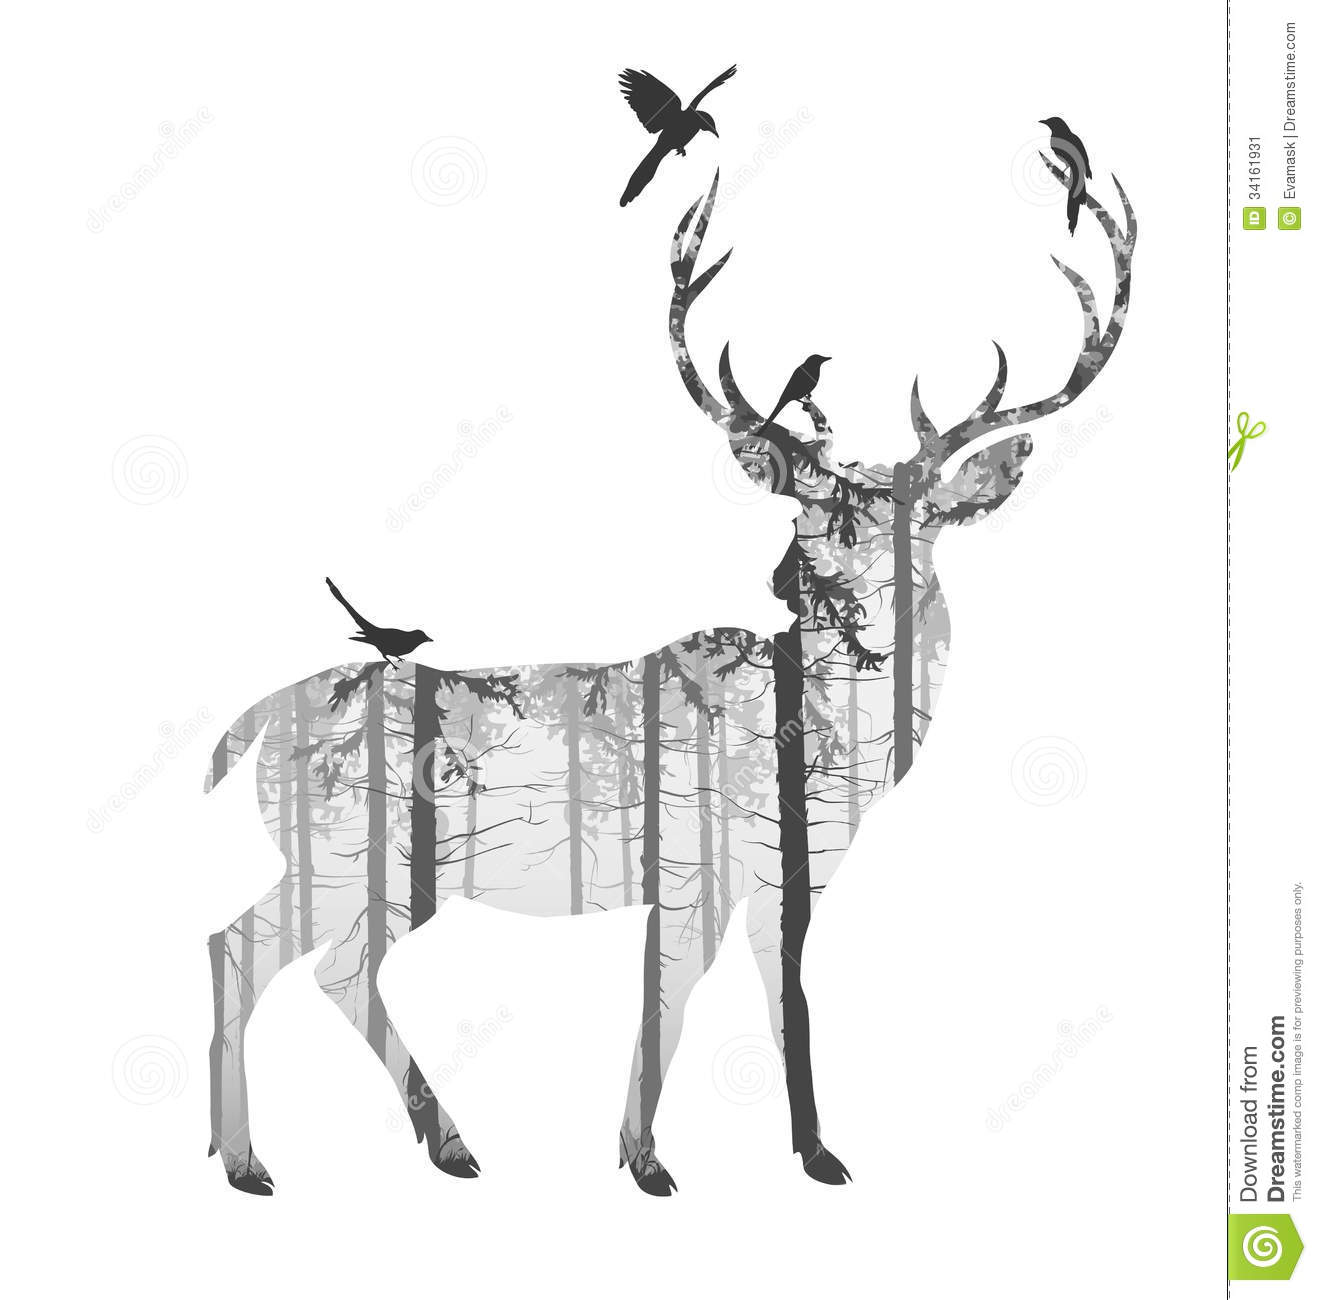 Drawn reindeer black and white Crafthubs Silhouette Silhouette Deer